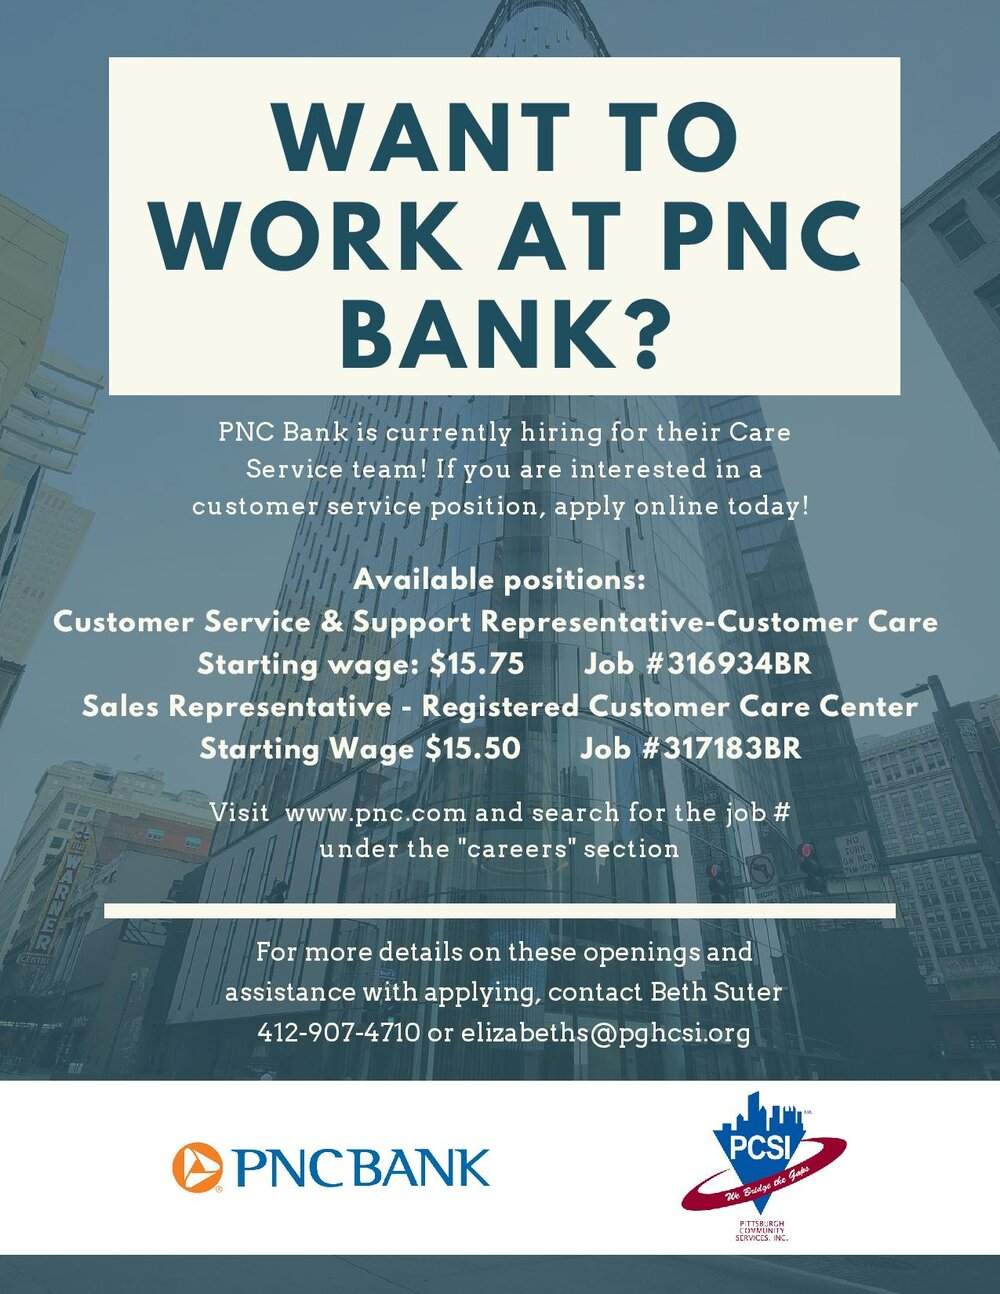 PNC Bank is Hiring 9-3-19-page-001.jpg